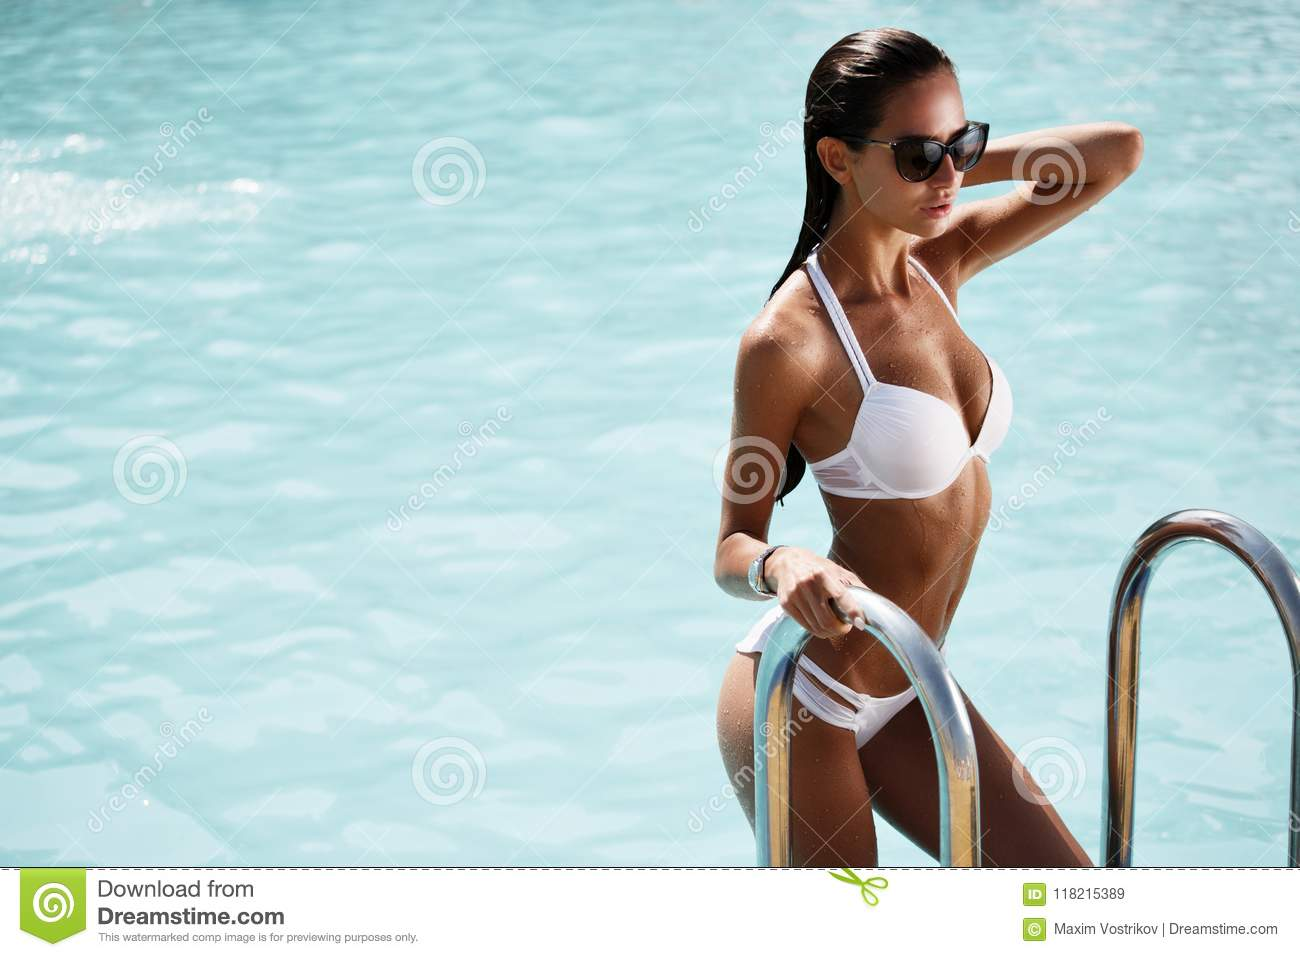 Elegant woman in the white bikini on the sun-tanned slim and shapely body is posing near the swimming pool